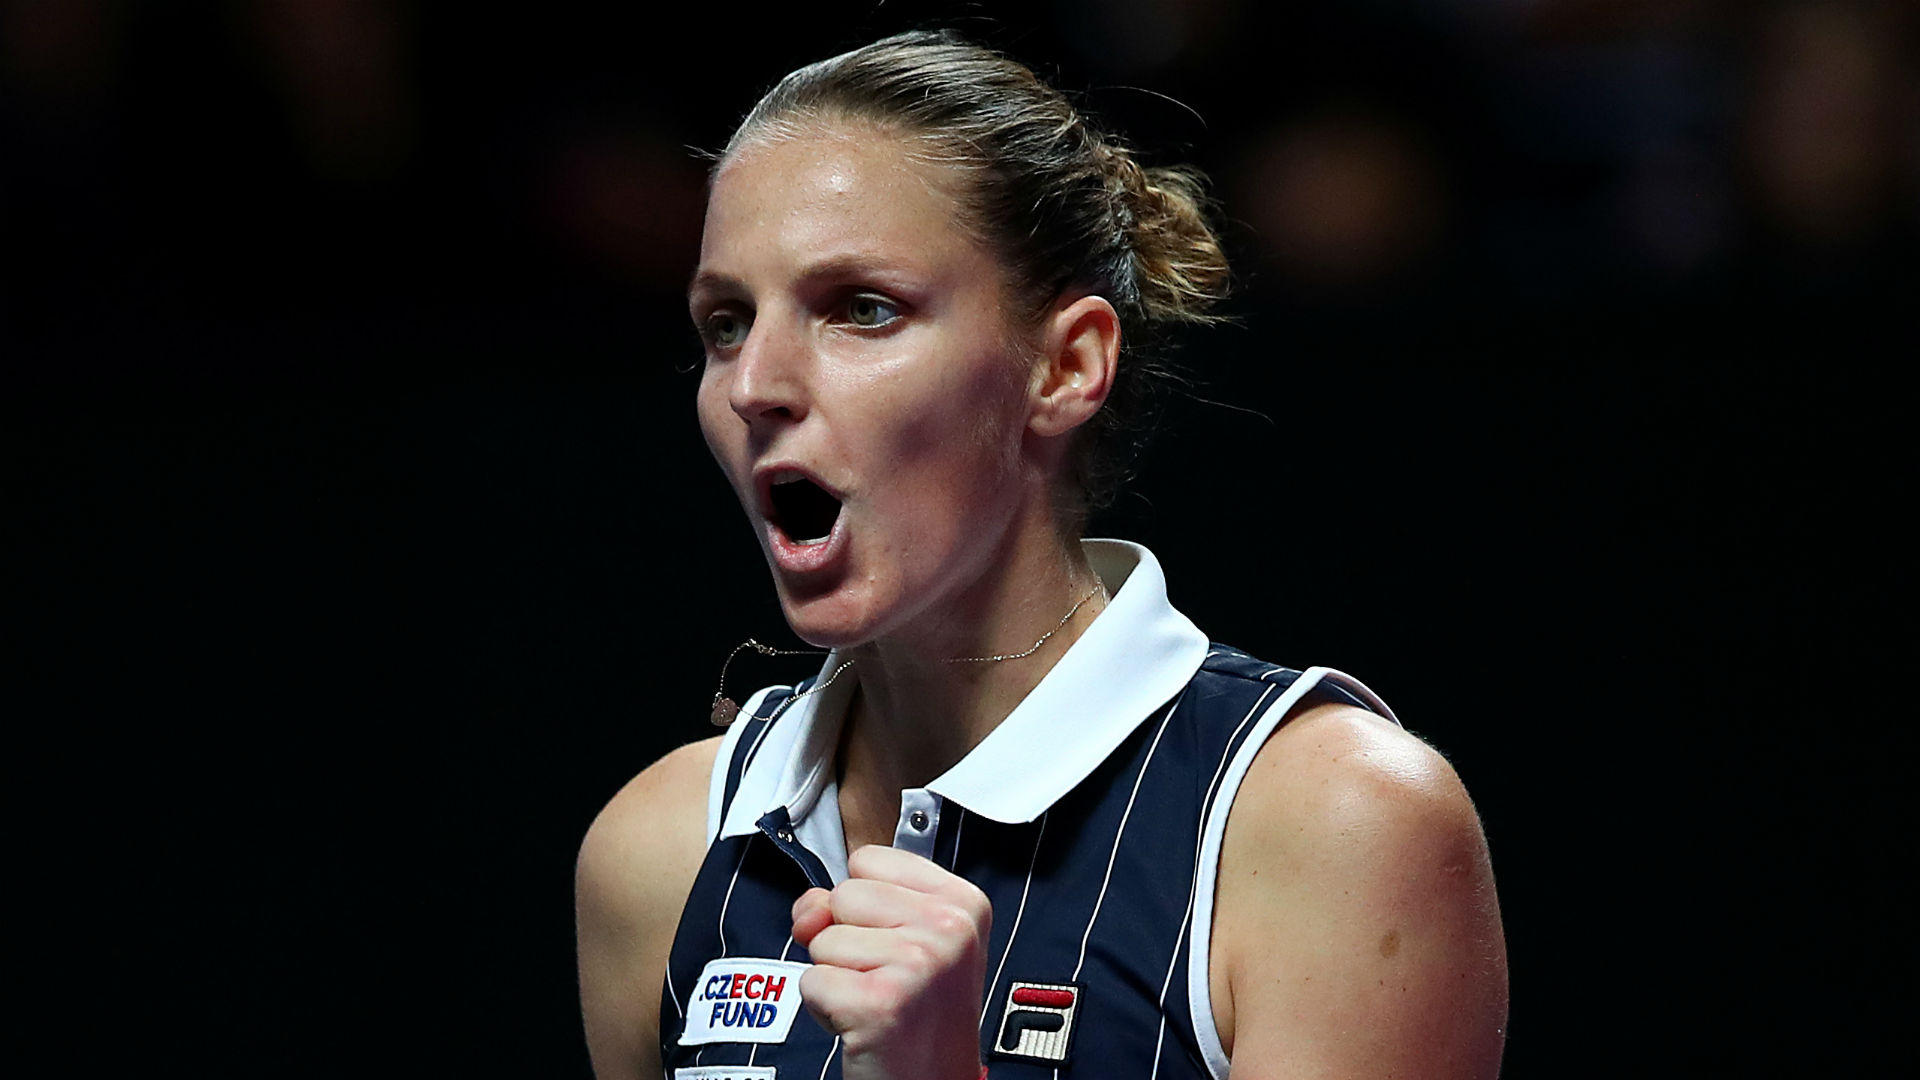 Karolina Pliskova believes Dani Vallverdu could be the man to take her to another level as she eyes a first grand slam title.